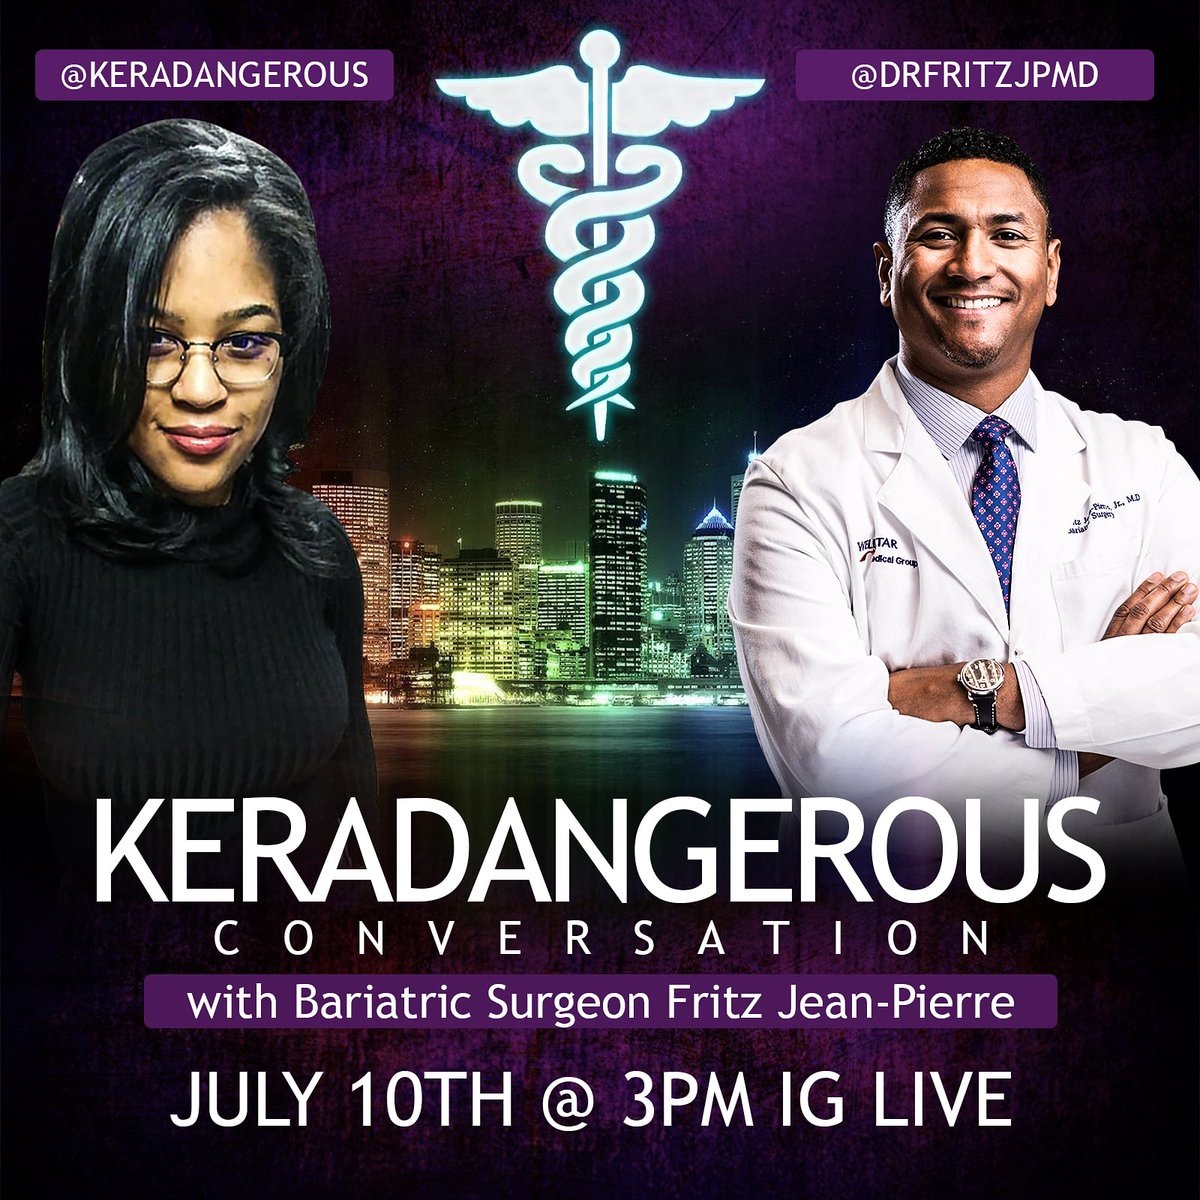 Please join me for my first IG Live Conversation that's apart of my Black History Series.I'll be talking to Bariatric Surgeon,Fritz Jean Pierre about disparities between black & white patients. IG Live July 10th @ 3pm.  #blm  #blackhealthmatters #blackdoctors #bariatric #Healthpic.twitter.com/UC9v2OiGVK